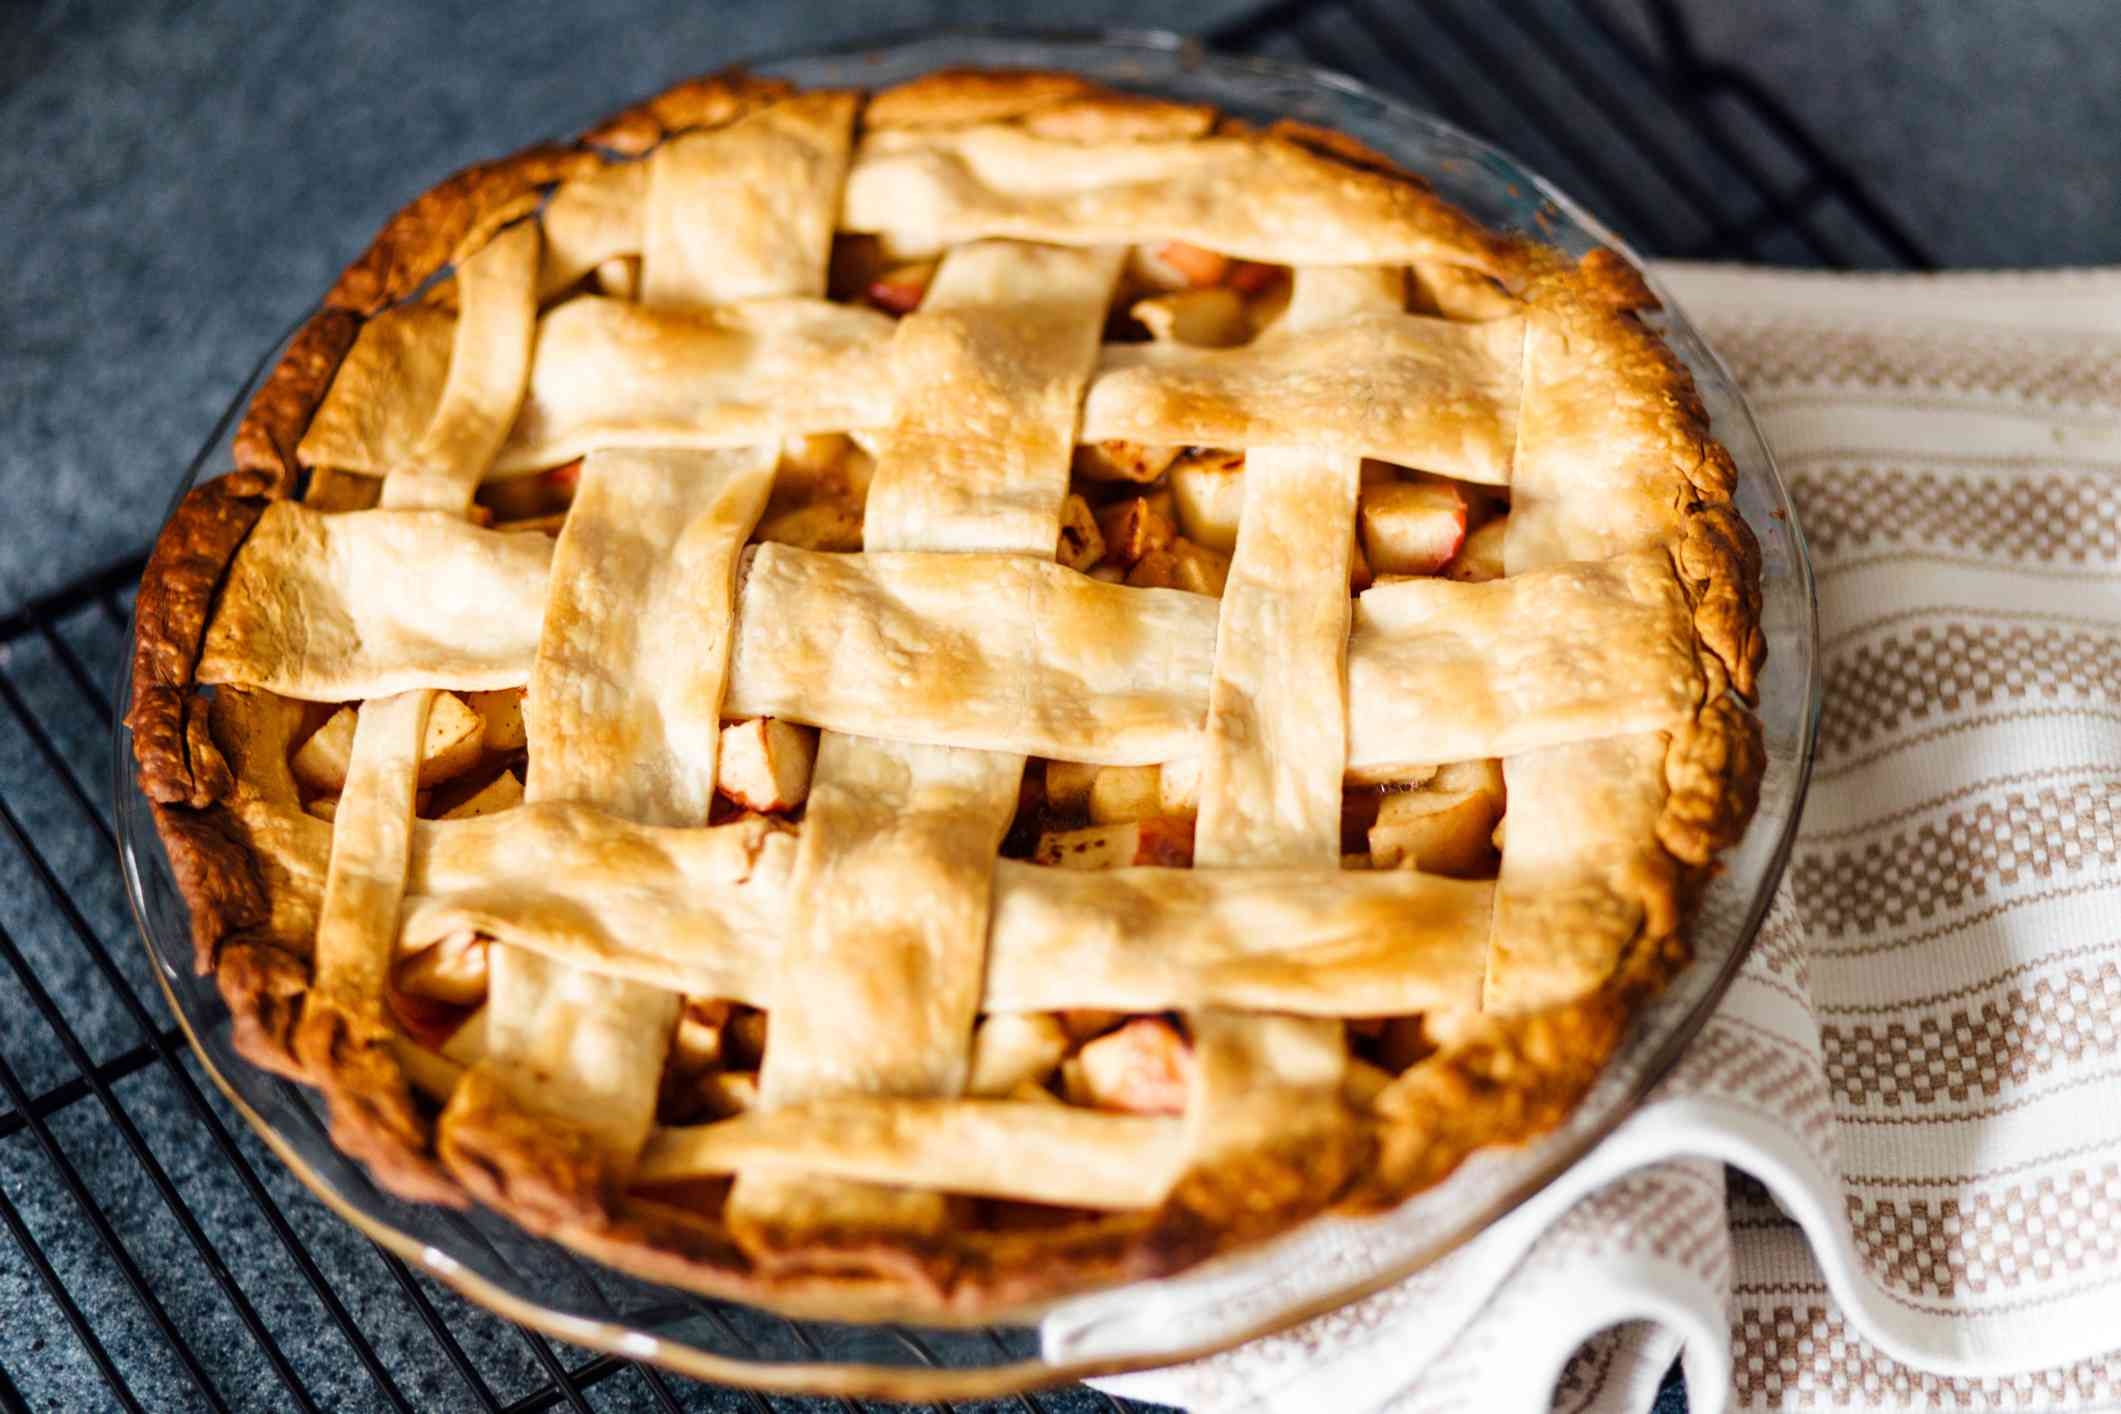 Apple pie with latticed pastry on the kitchen counter